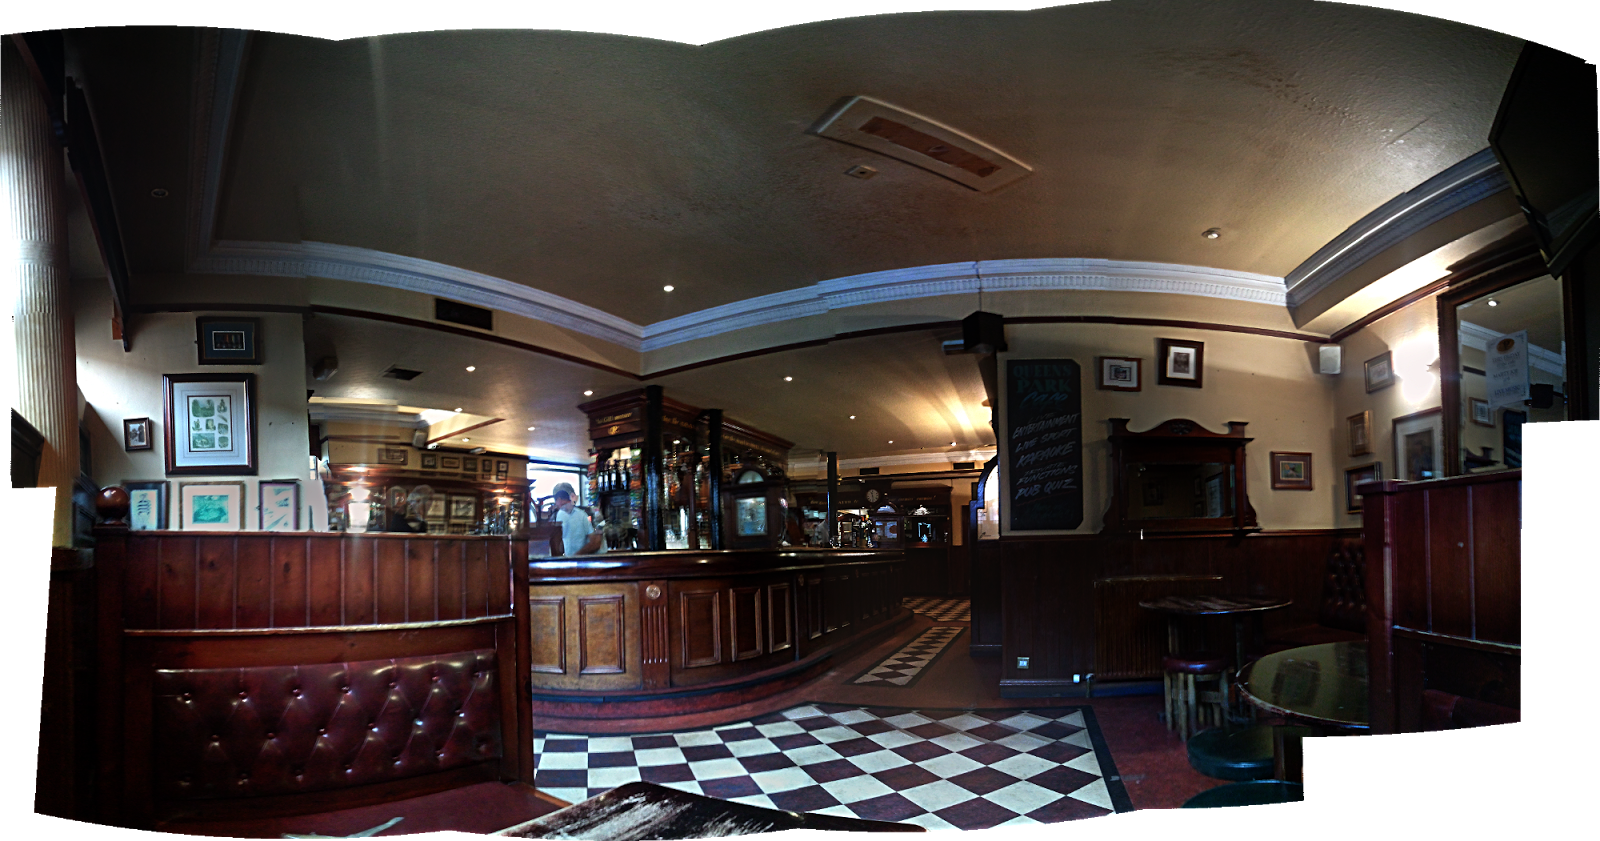 Queens Park Cafe, Glasgow: